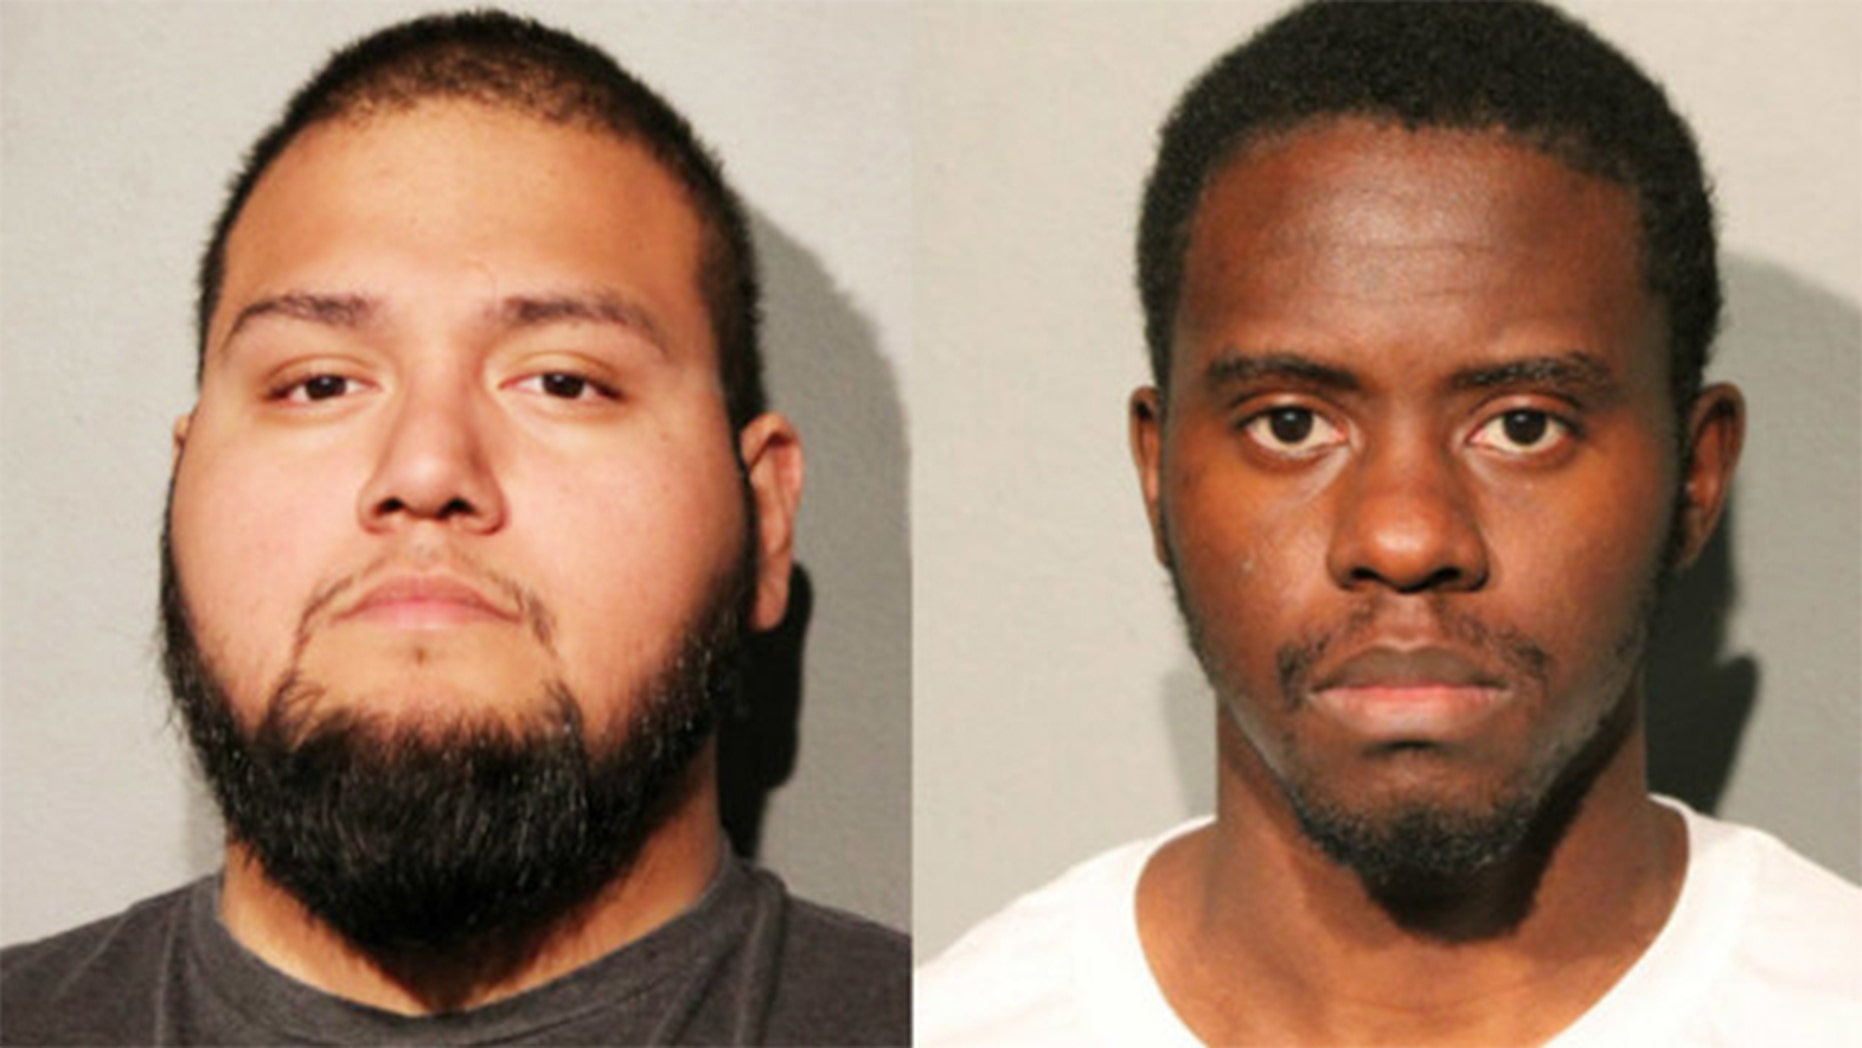 Artemio Calderon and Jarrell Patterson are accused of stealing up to $100,000 from a church in Chicago.